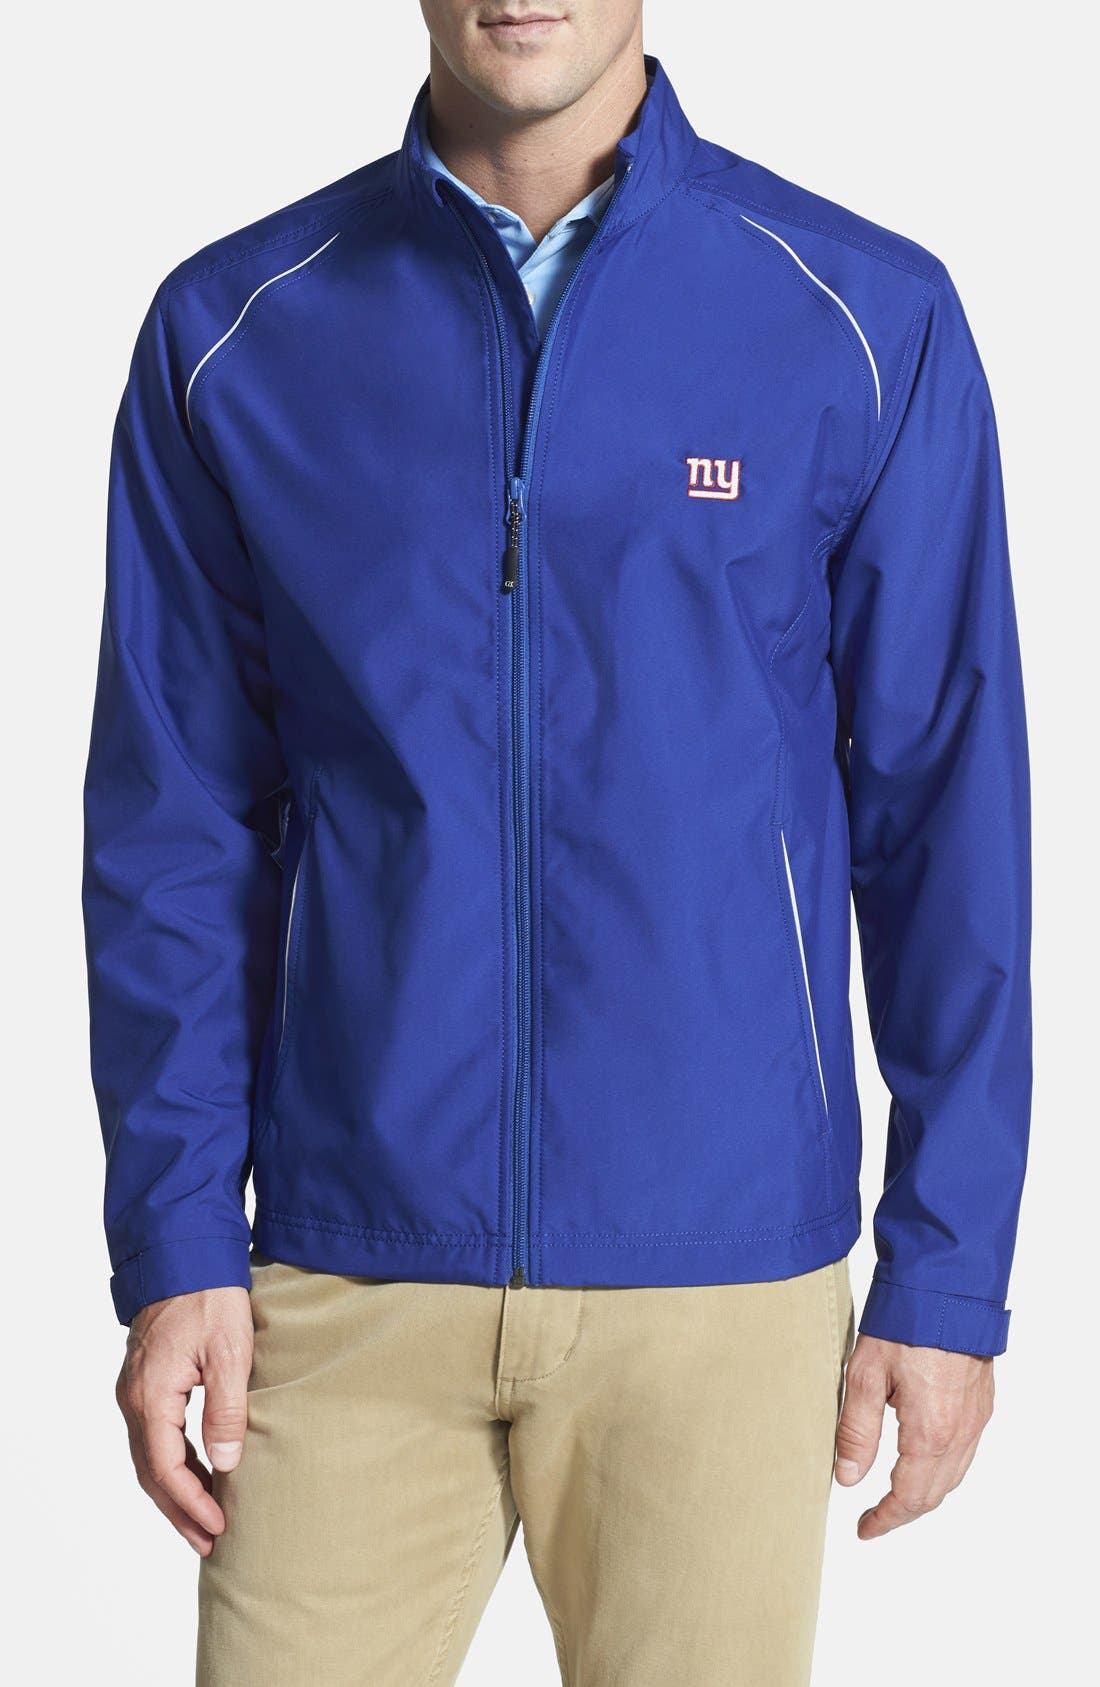 Cutter & Buck 'New York Giants - Beacon' WeatherTec Wind & Water Resistant Jacket (Big & Tall)